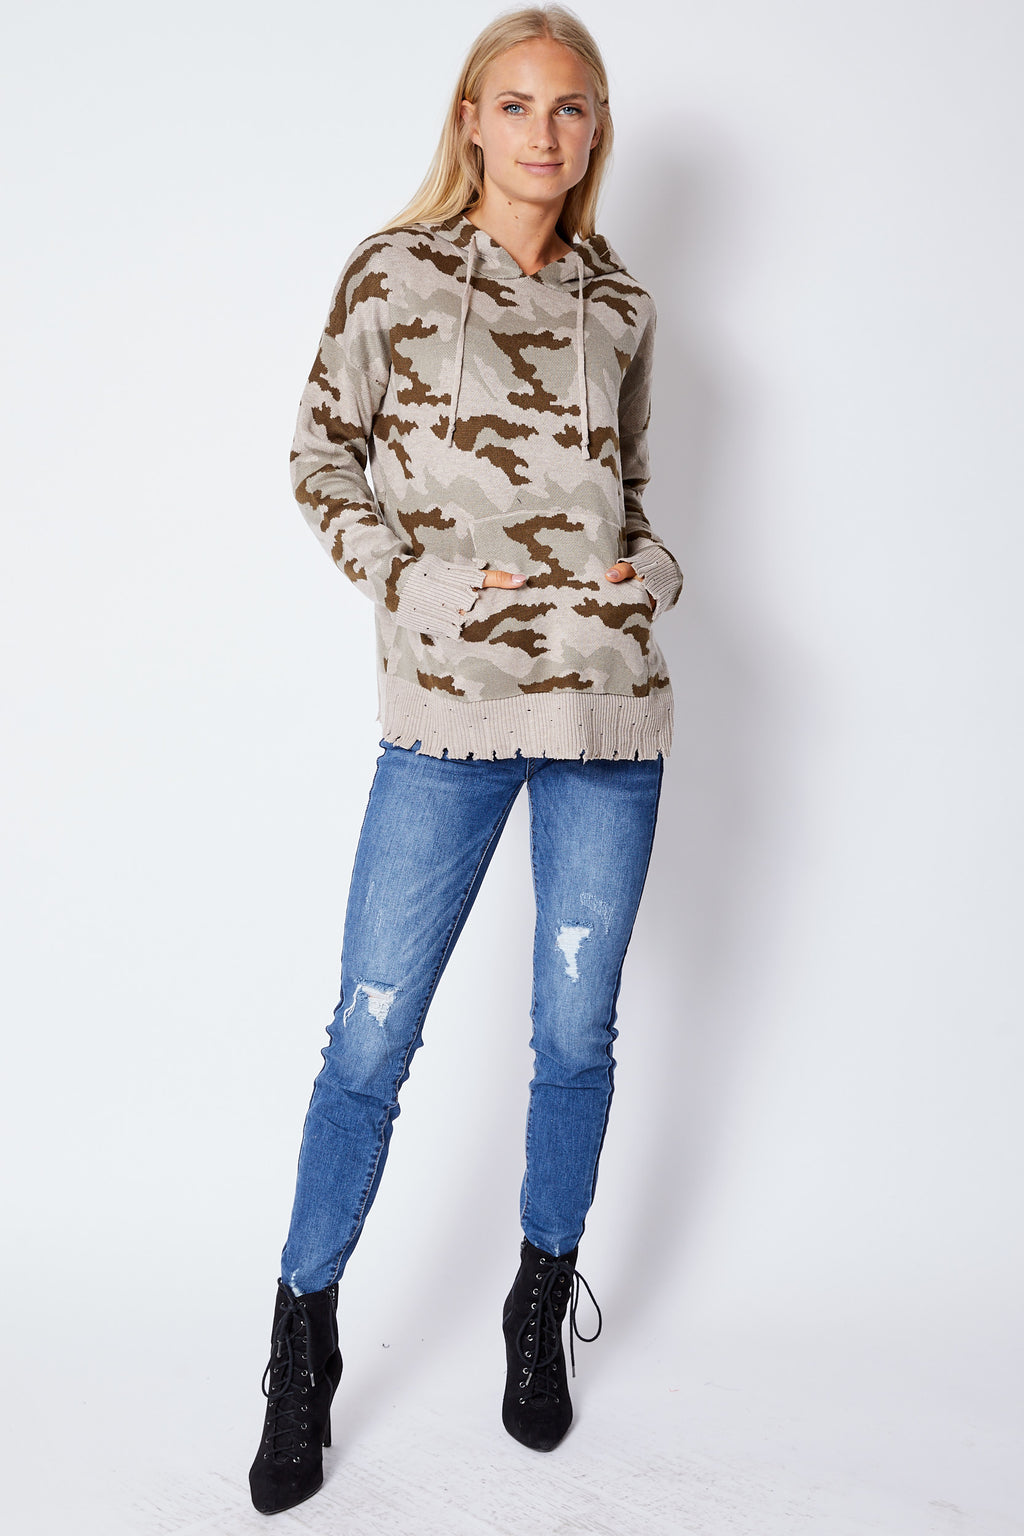 Camo Hoodie Rough Edge - Jacqueline B Clothing